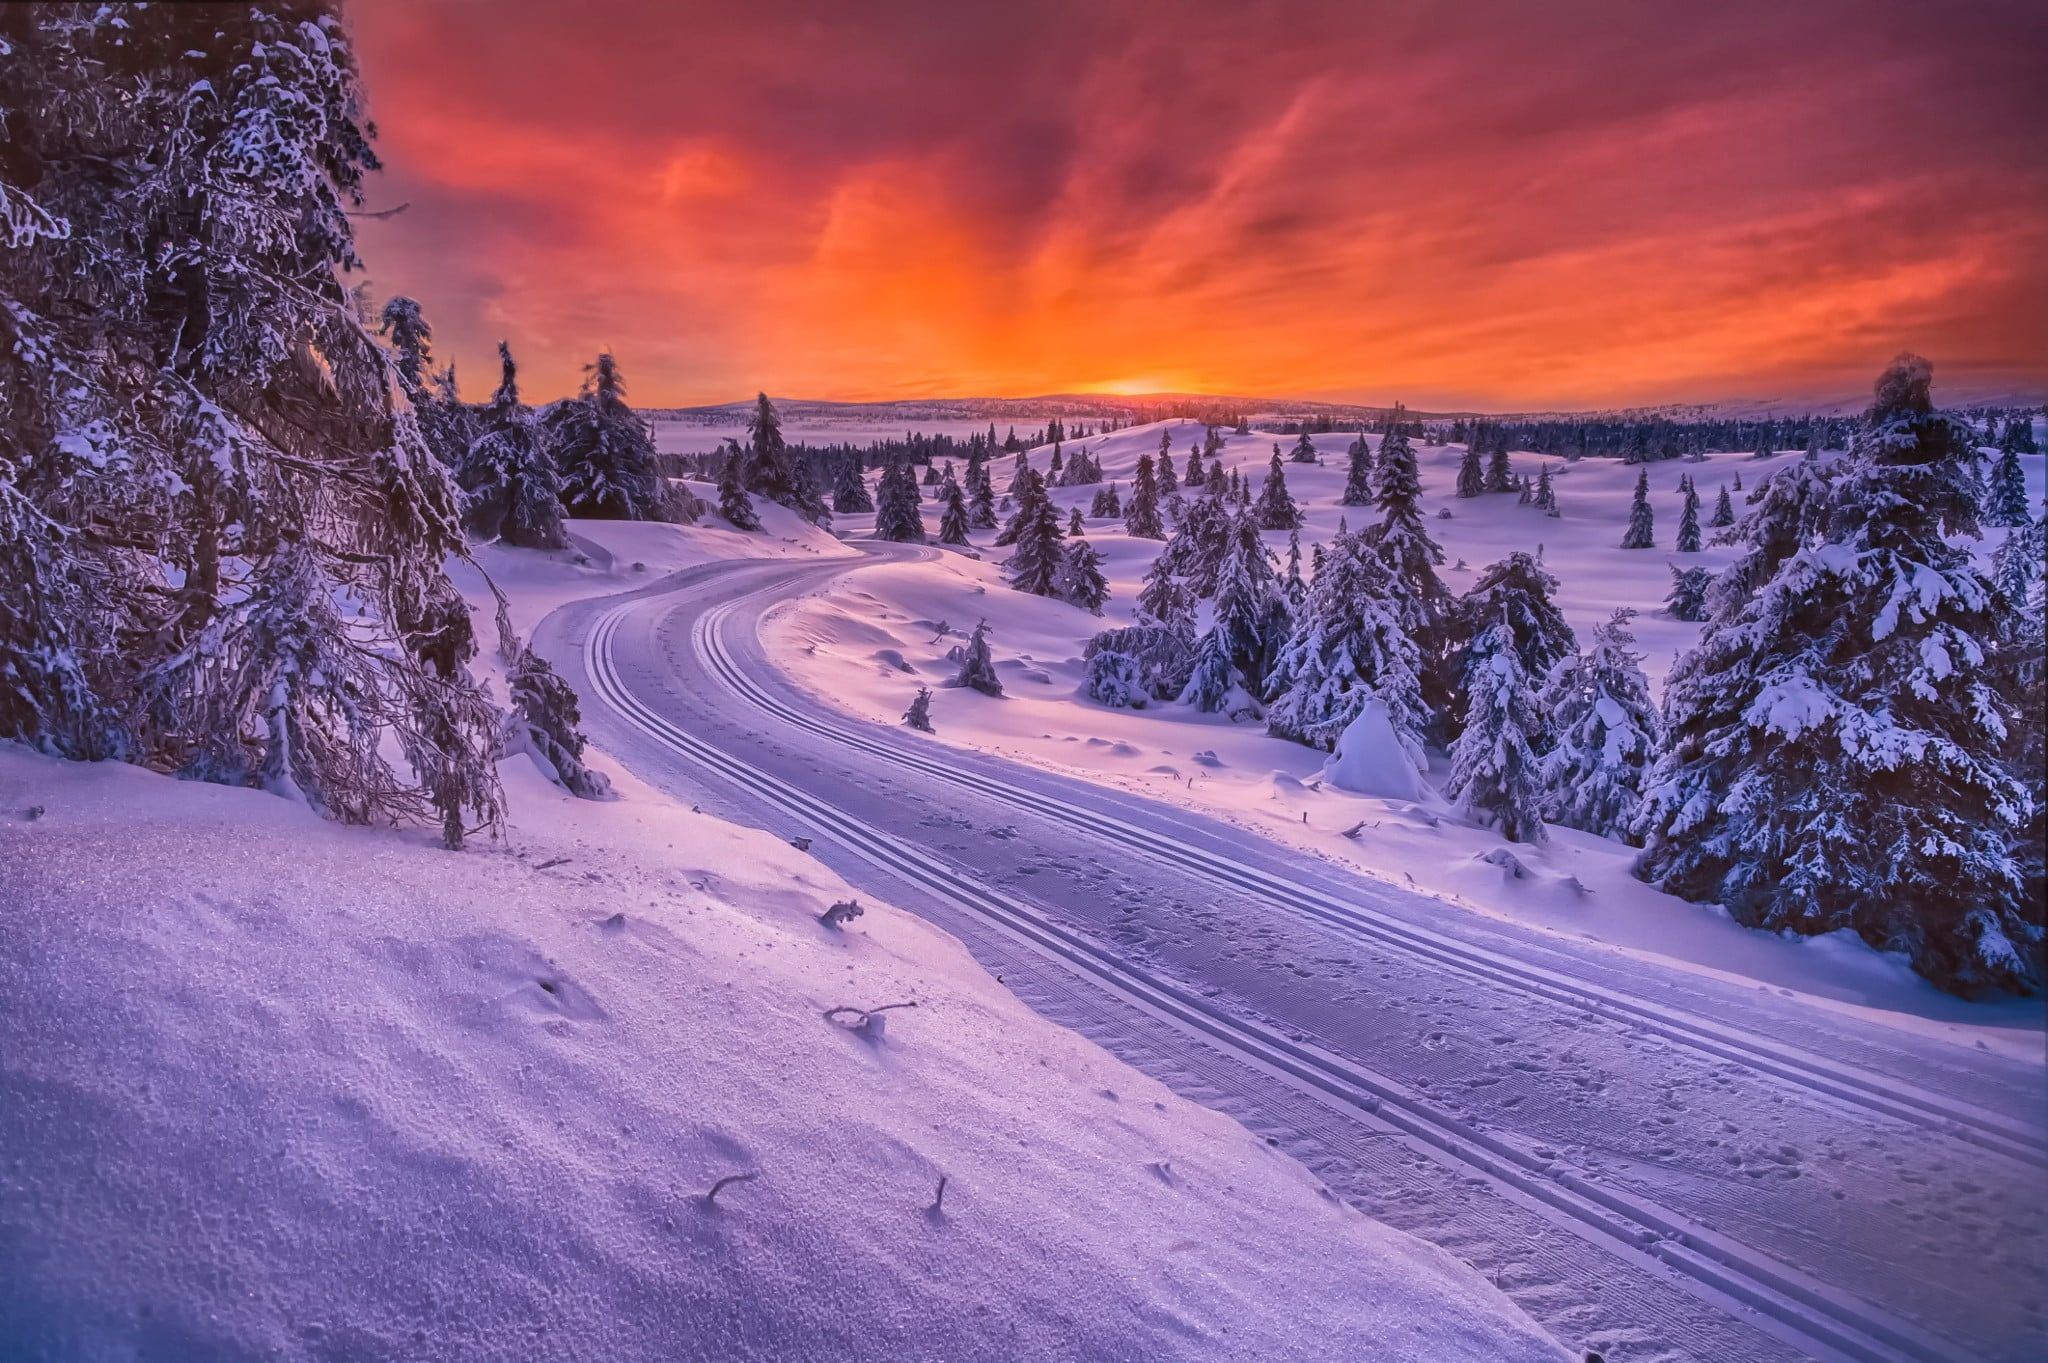 Landscape Photo Of Snow Field With Train Tracks Nature Landscape Winter Snow Norway Trees Sunset Road Norway Winter Winter Wallpaper Landscape Photos Hd wallpaper sunset snow winter field